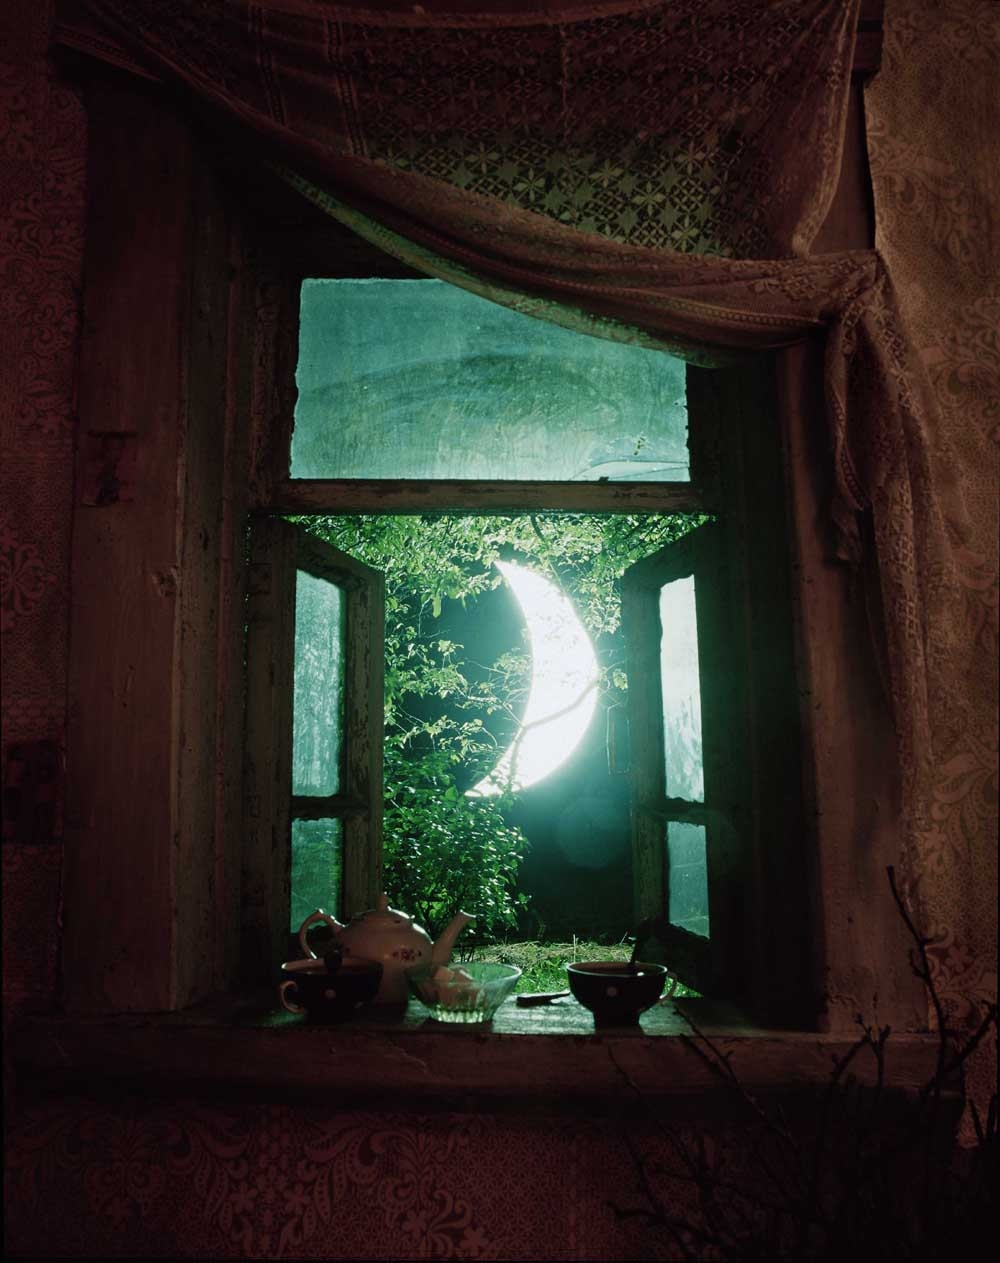 I invite the moon to tea / like a lump of sugar / the damp night dissolves the moon in / an apple tree